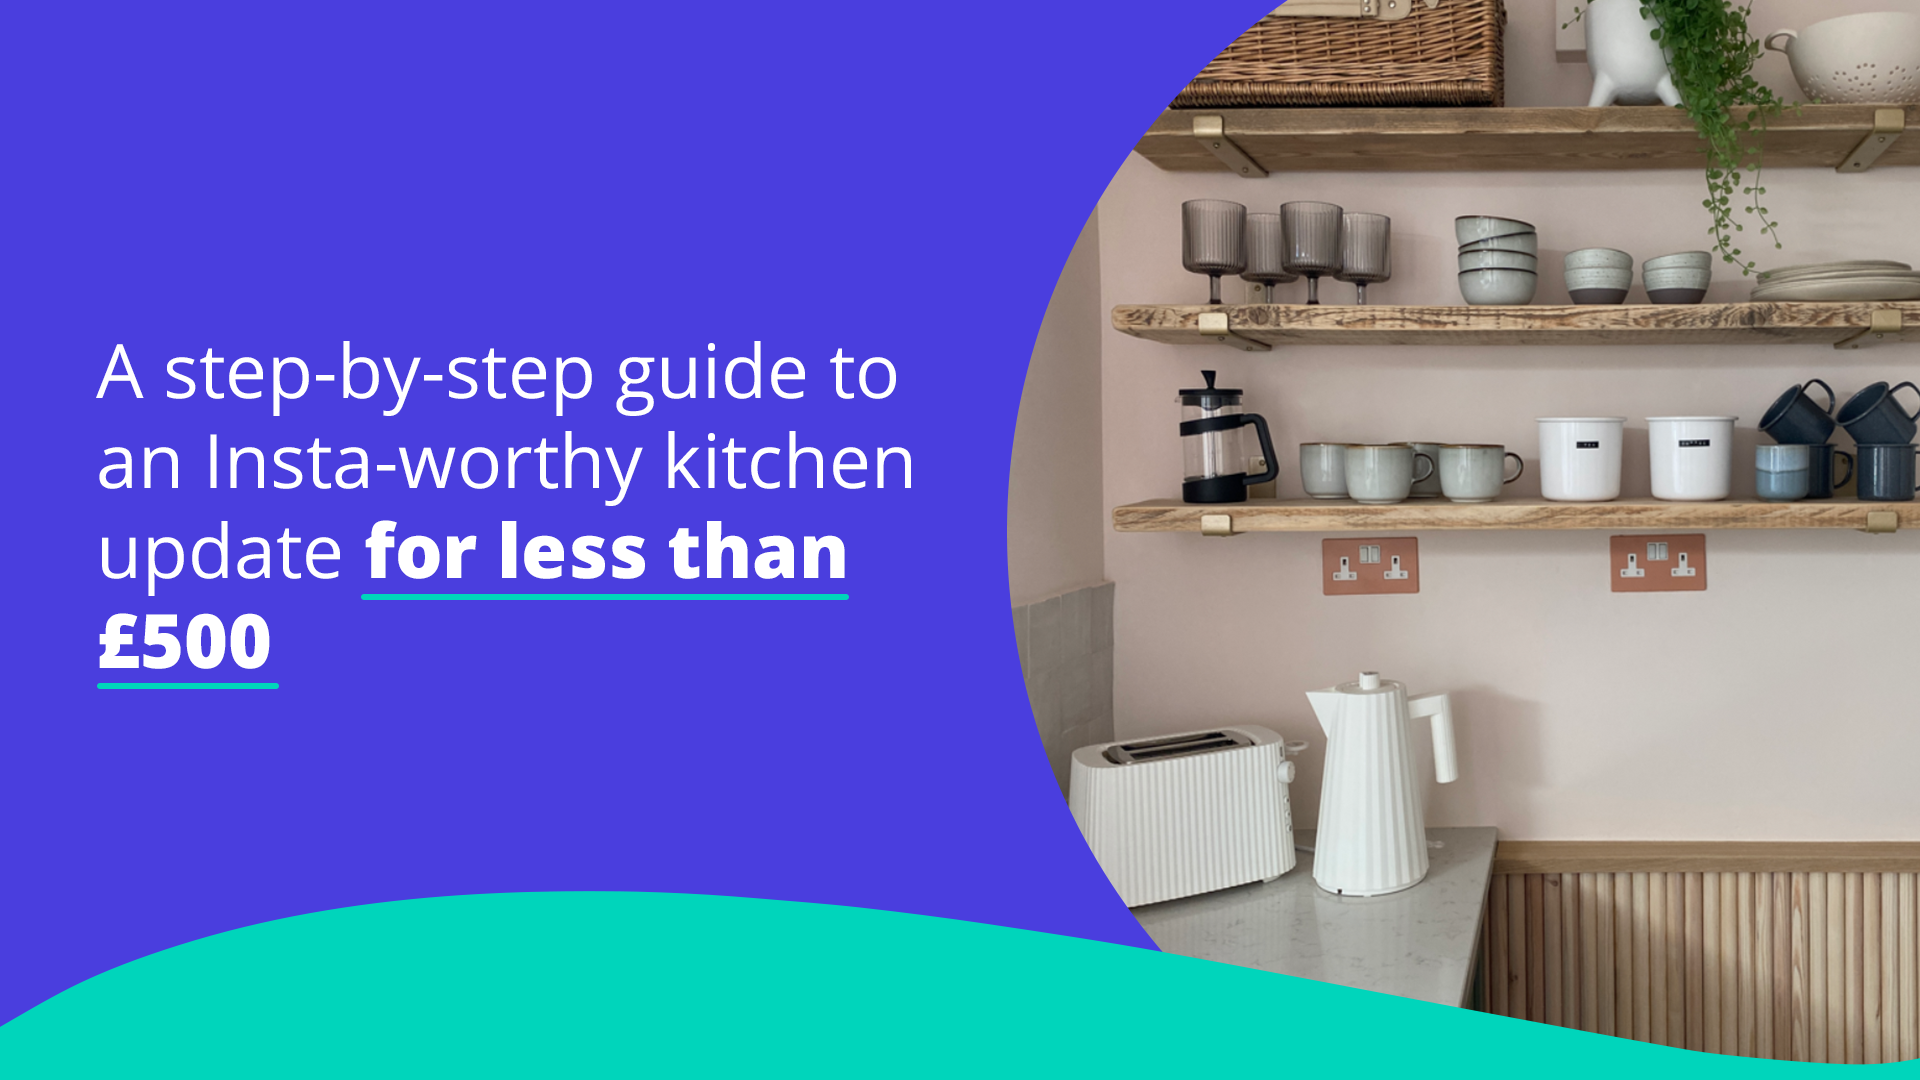 a-step-by-step-guide-to-an-insta-worthy-kitchen-update-for-less-than-gbp500